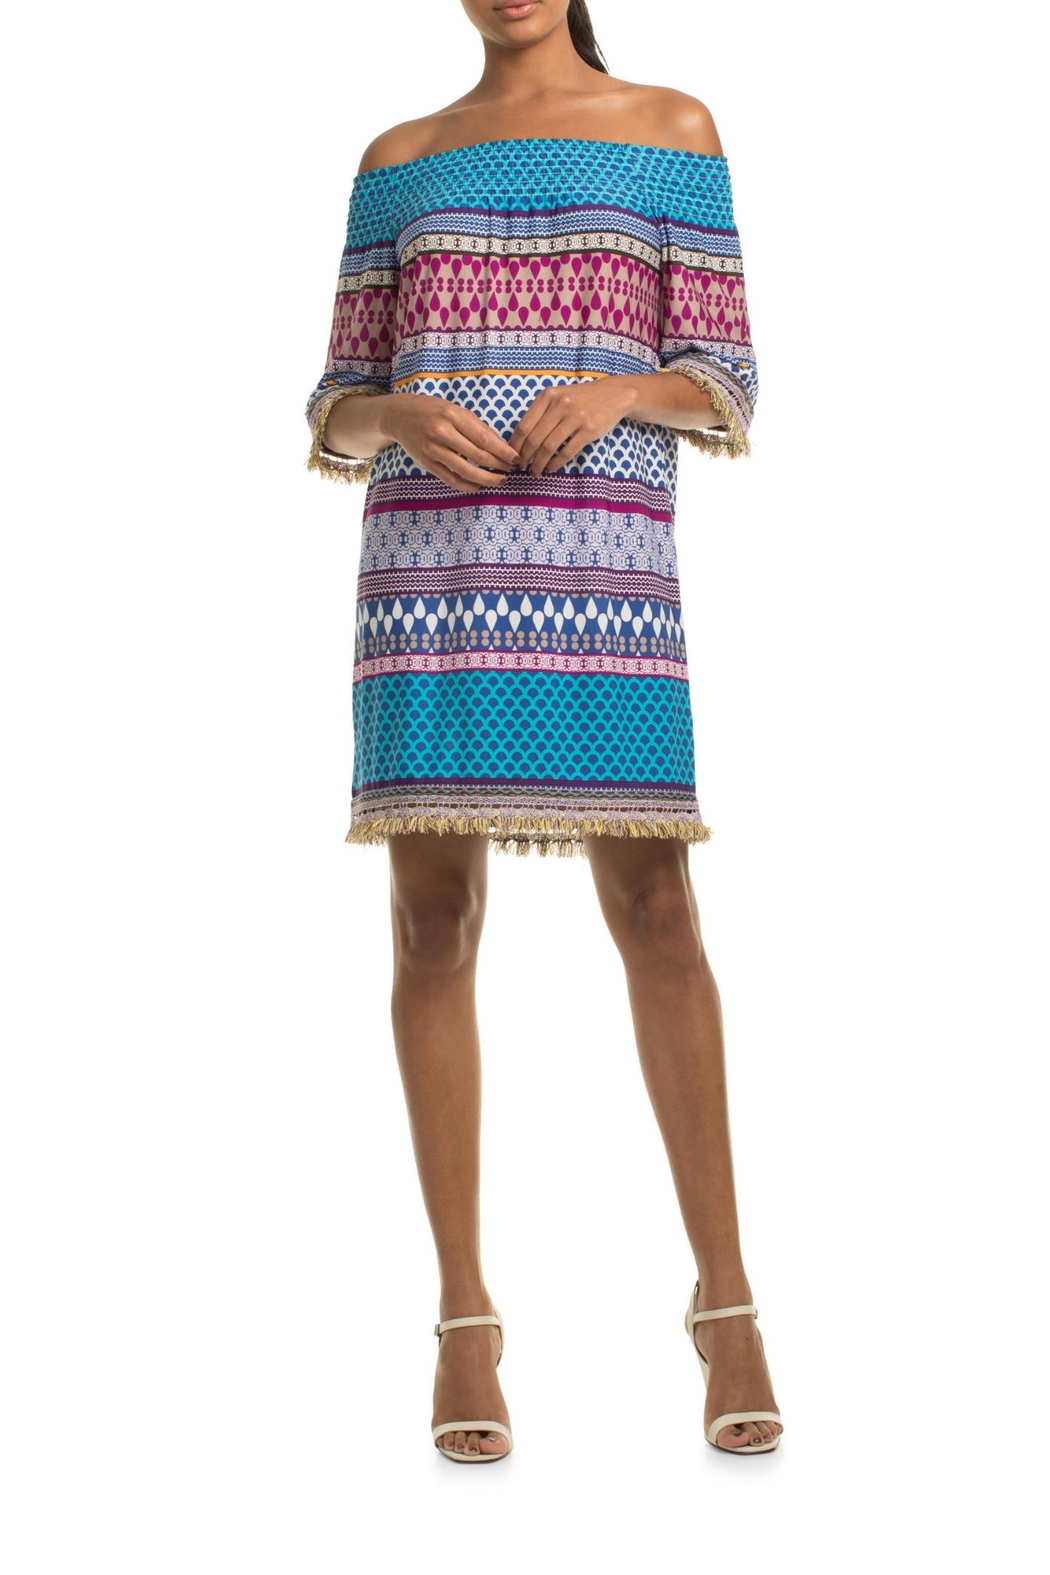 Trina Turk Emilia Dress - Side Cropped Image